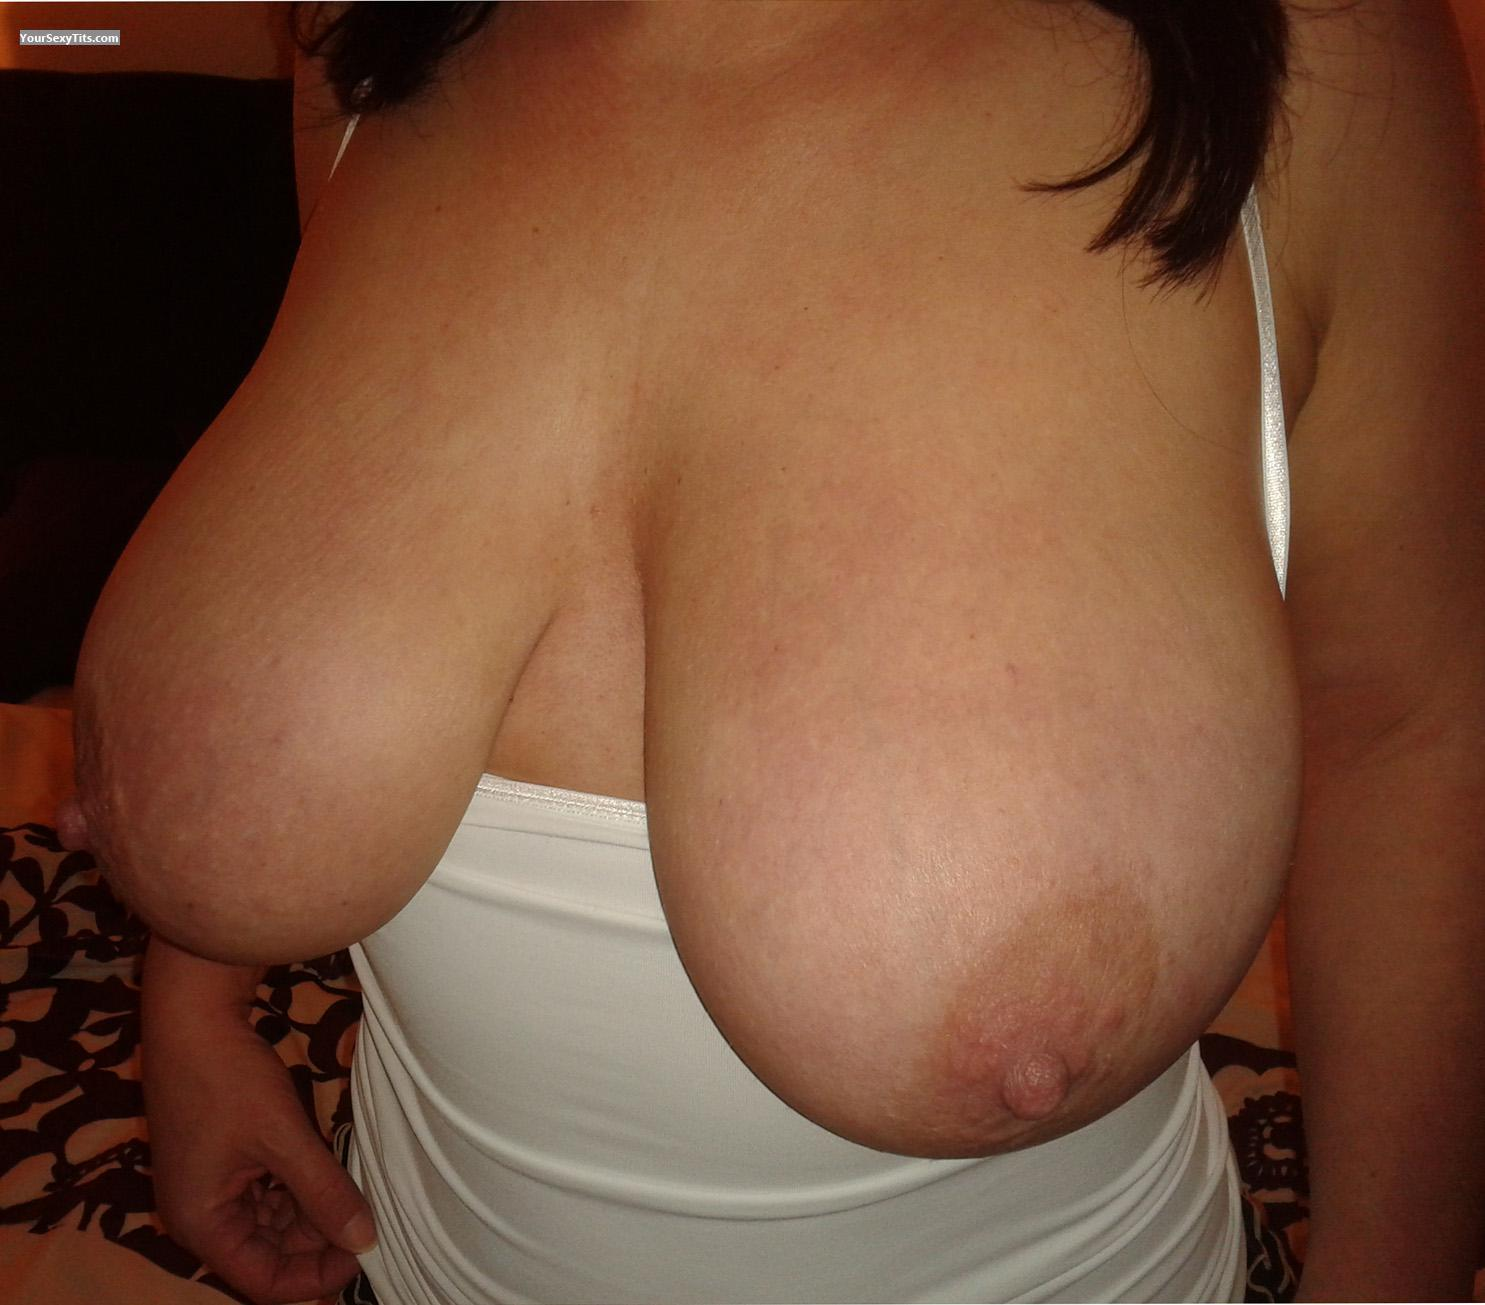 Tit Flash: Wife's Very Big Tits - Mamma36ff from United Kingdom